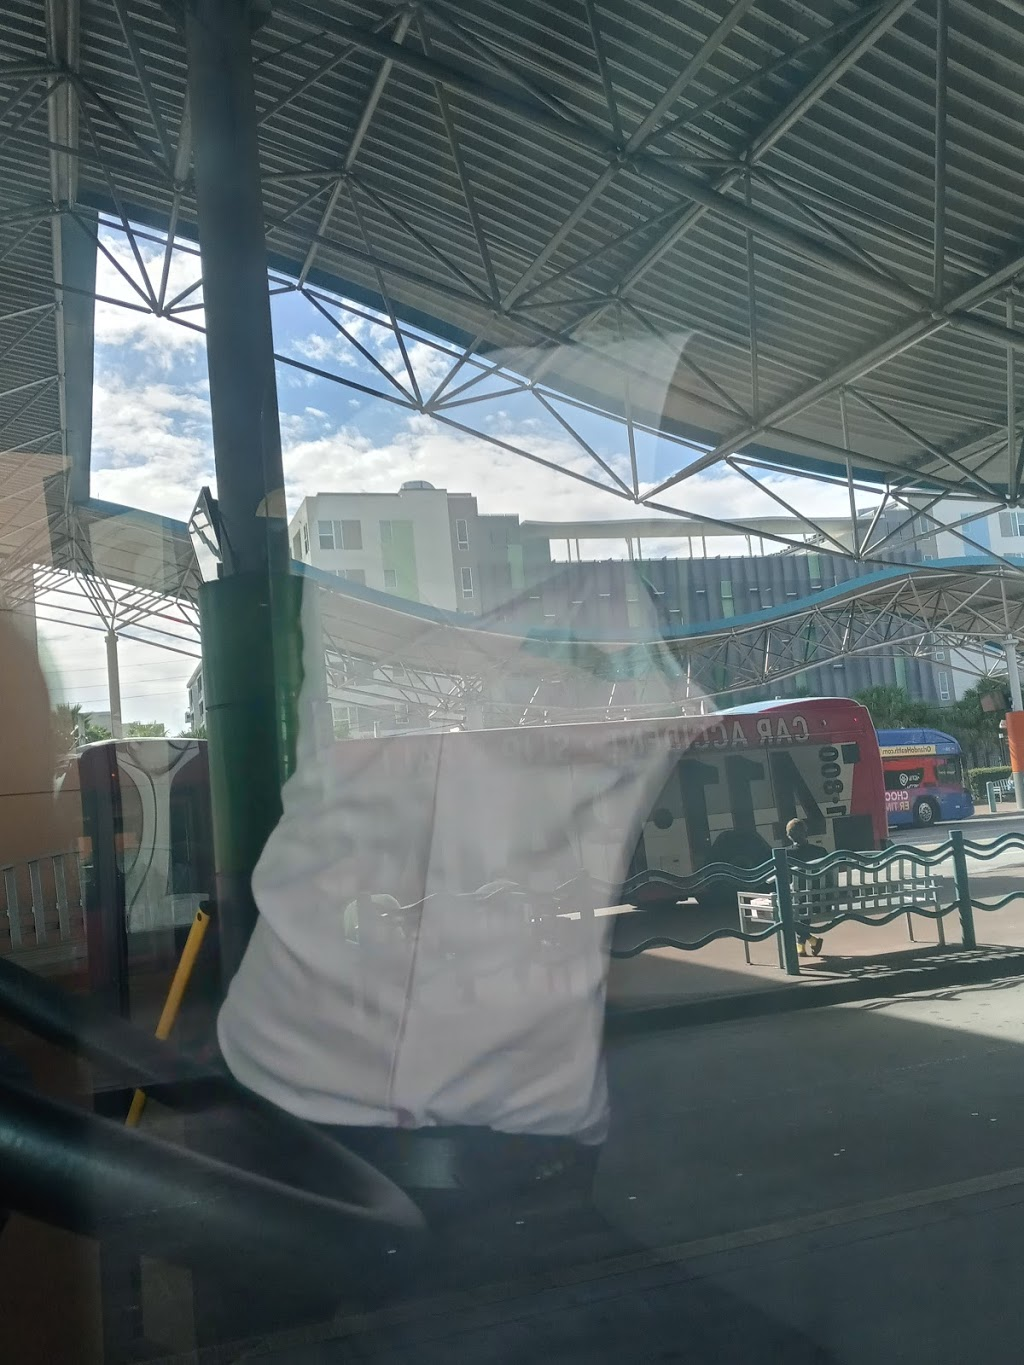 LYNX Central Bus Station - point of interest    Photo 6 of 6   Address: 401 N Garland Ave, Orlando, FL 32801, USA   Phone: (407) 841-5969